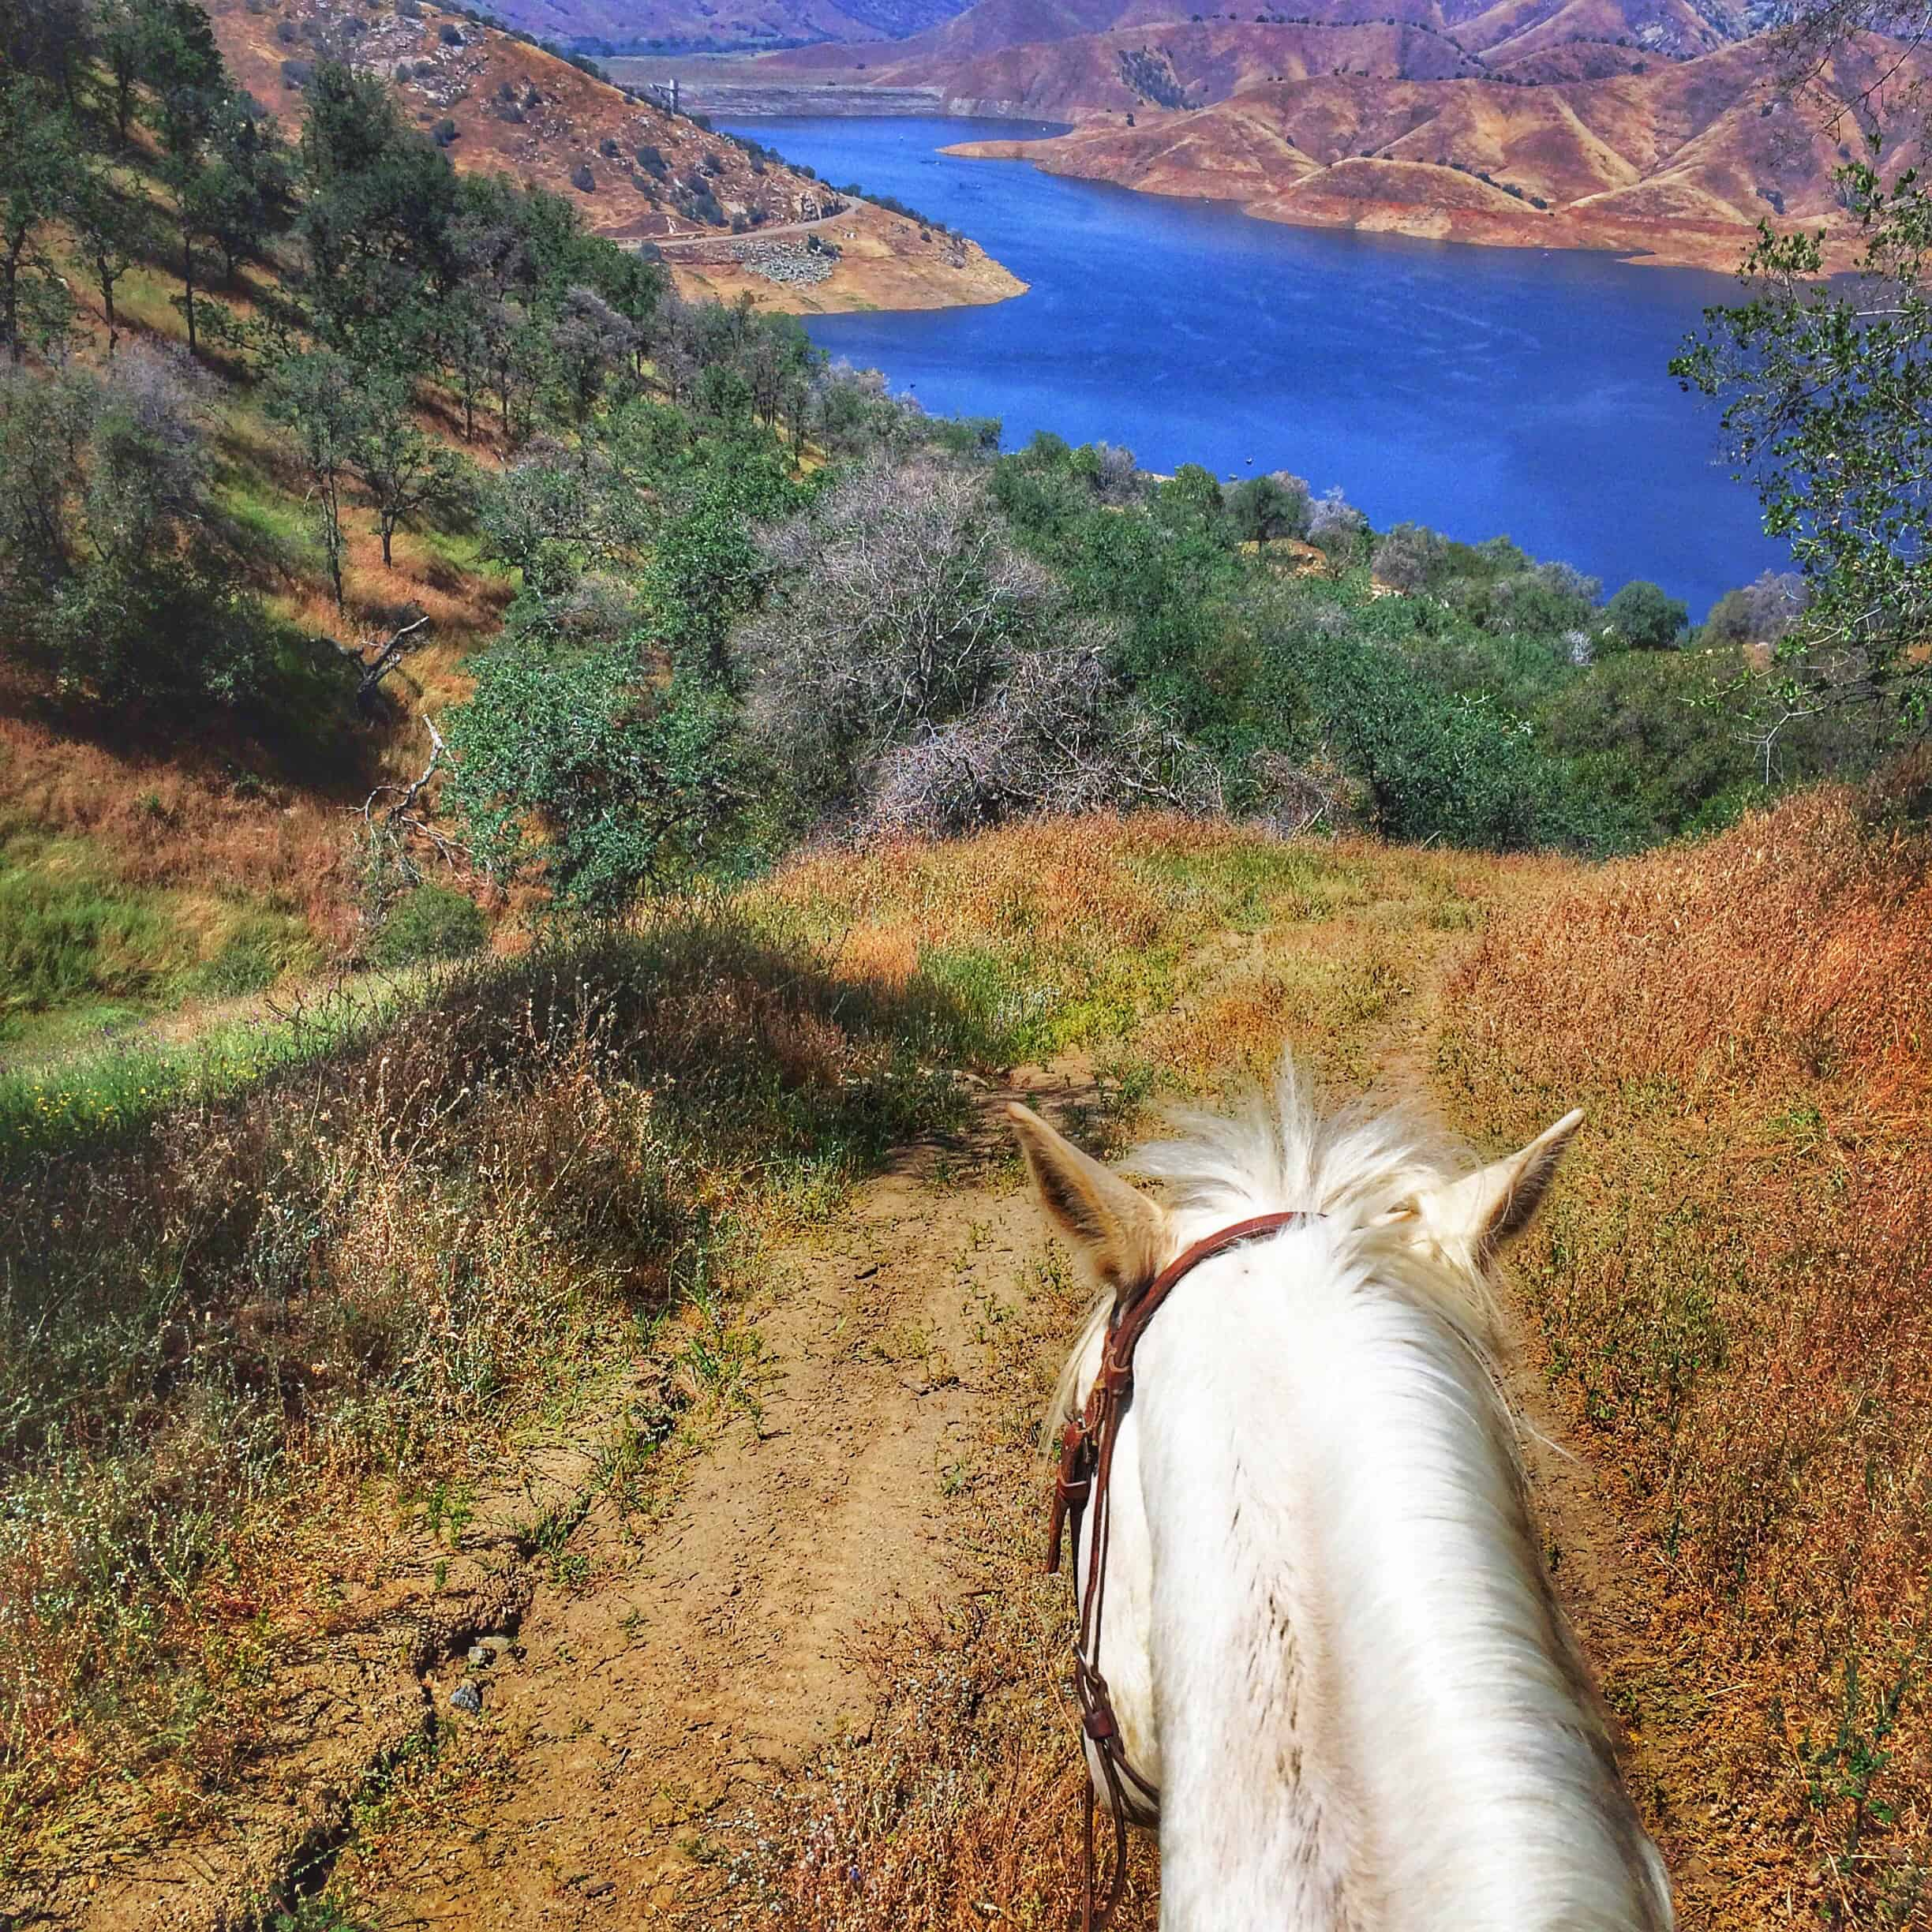 A View of Lake Kaweah from the Ranch